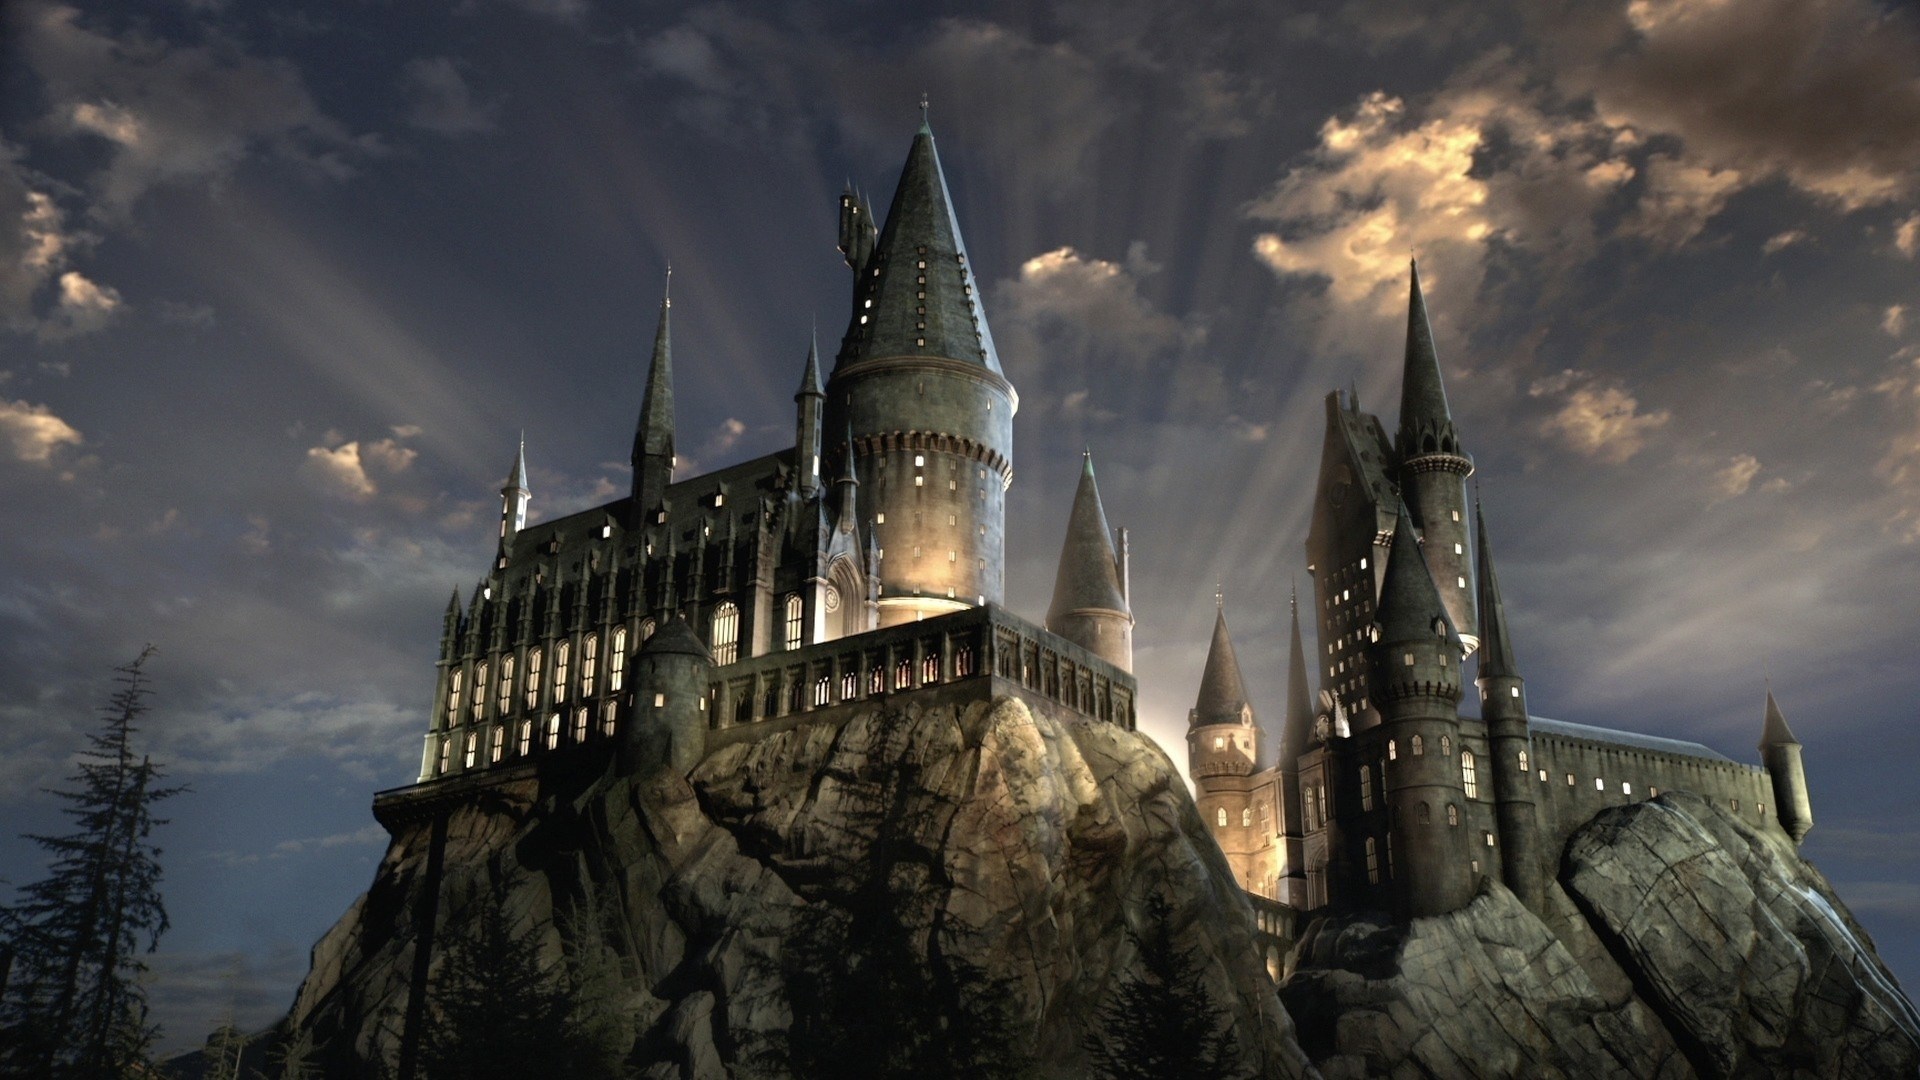 hogwarts wallpaper hd (64+ images)